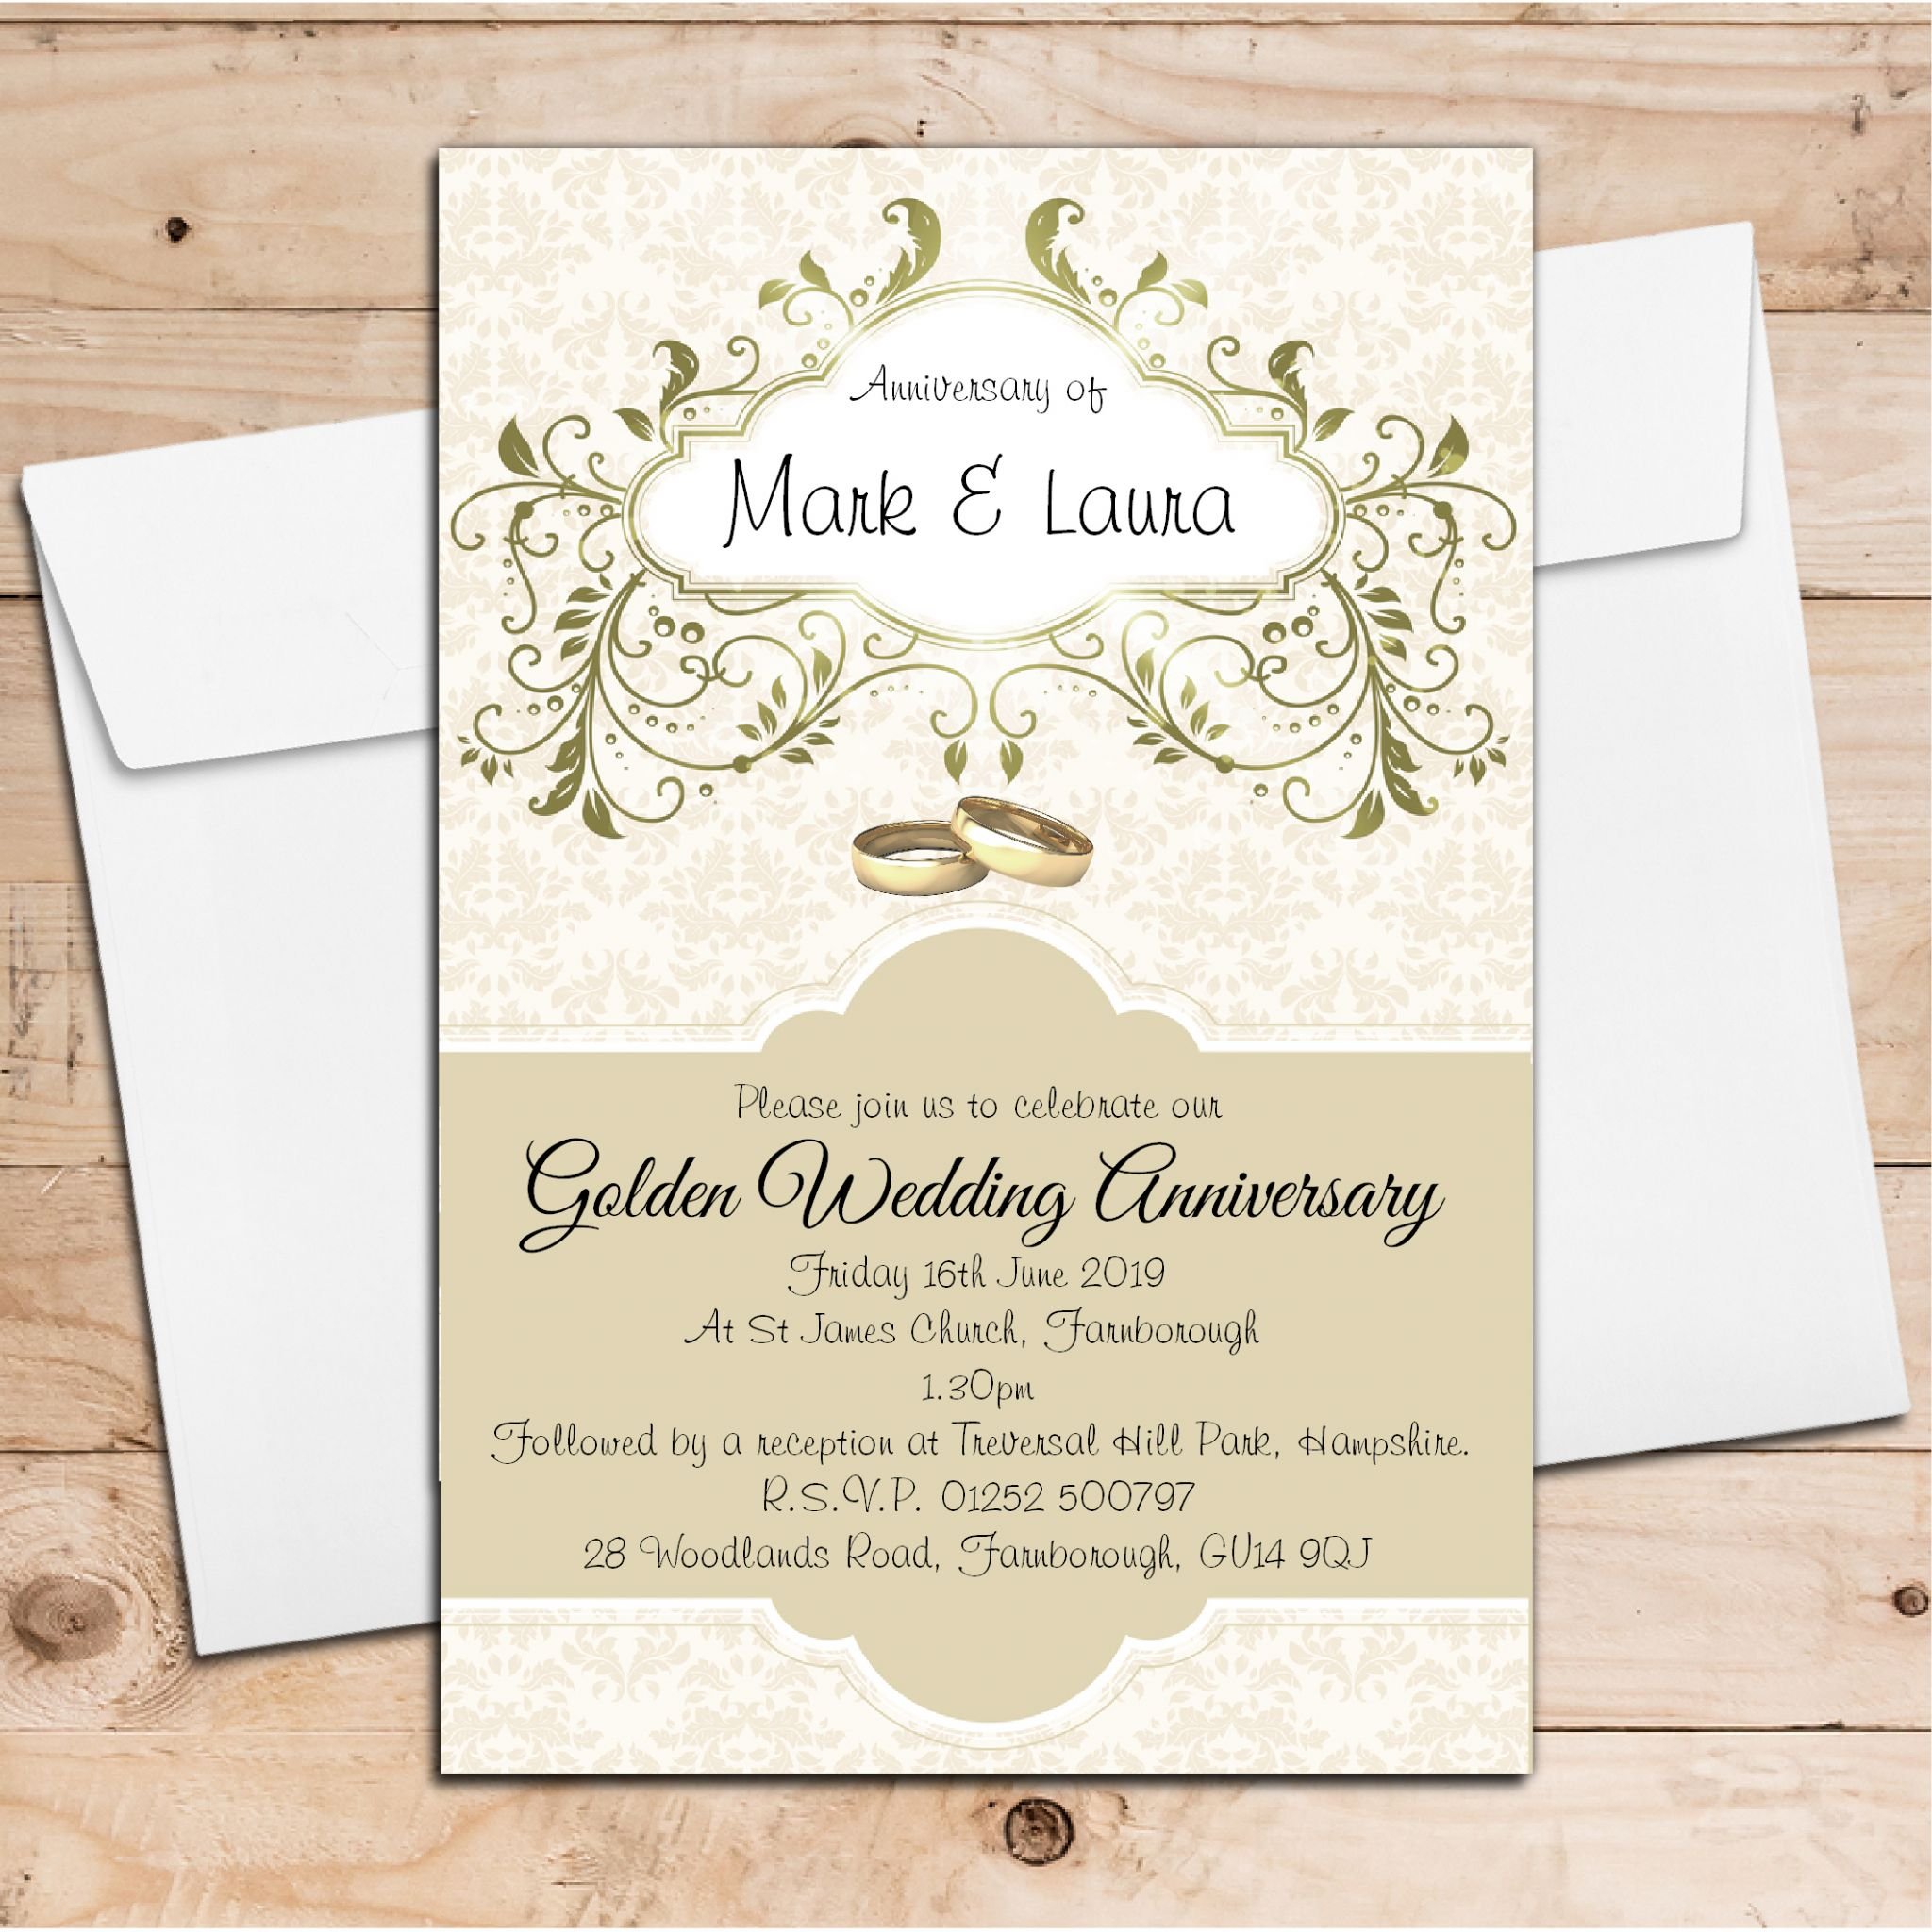 Golden Wedding Anniversary Invitations Wording: 10 Personalised Golden Wedding Anniversary Invitations N13